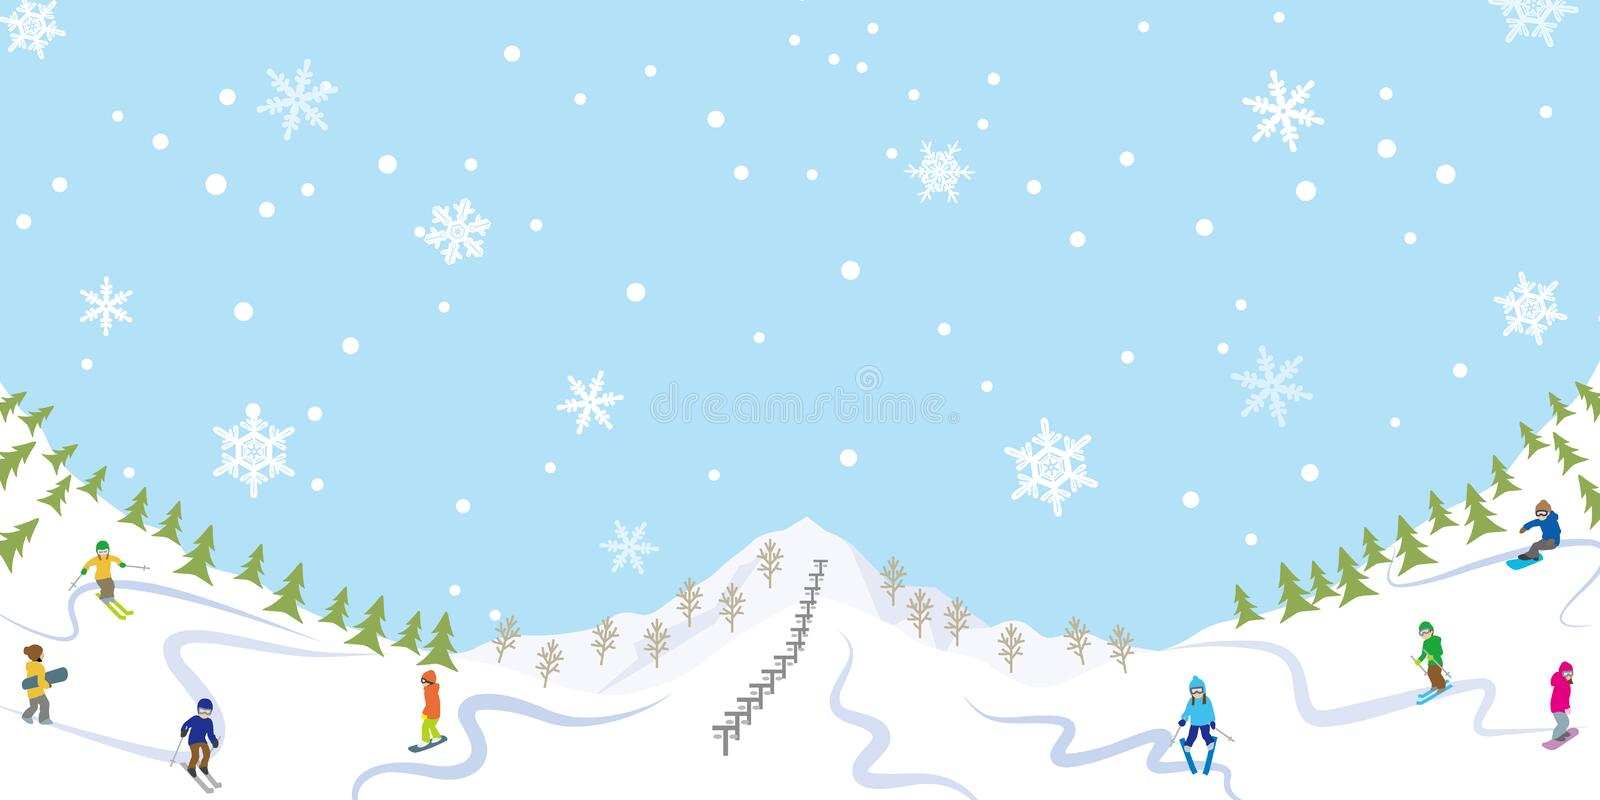 Snowing Ski slope royalty free illustration